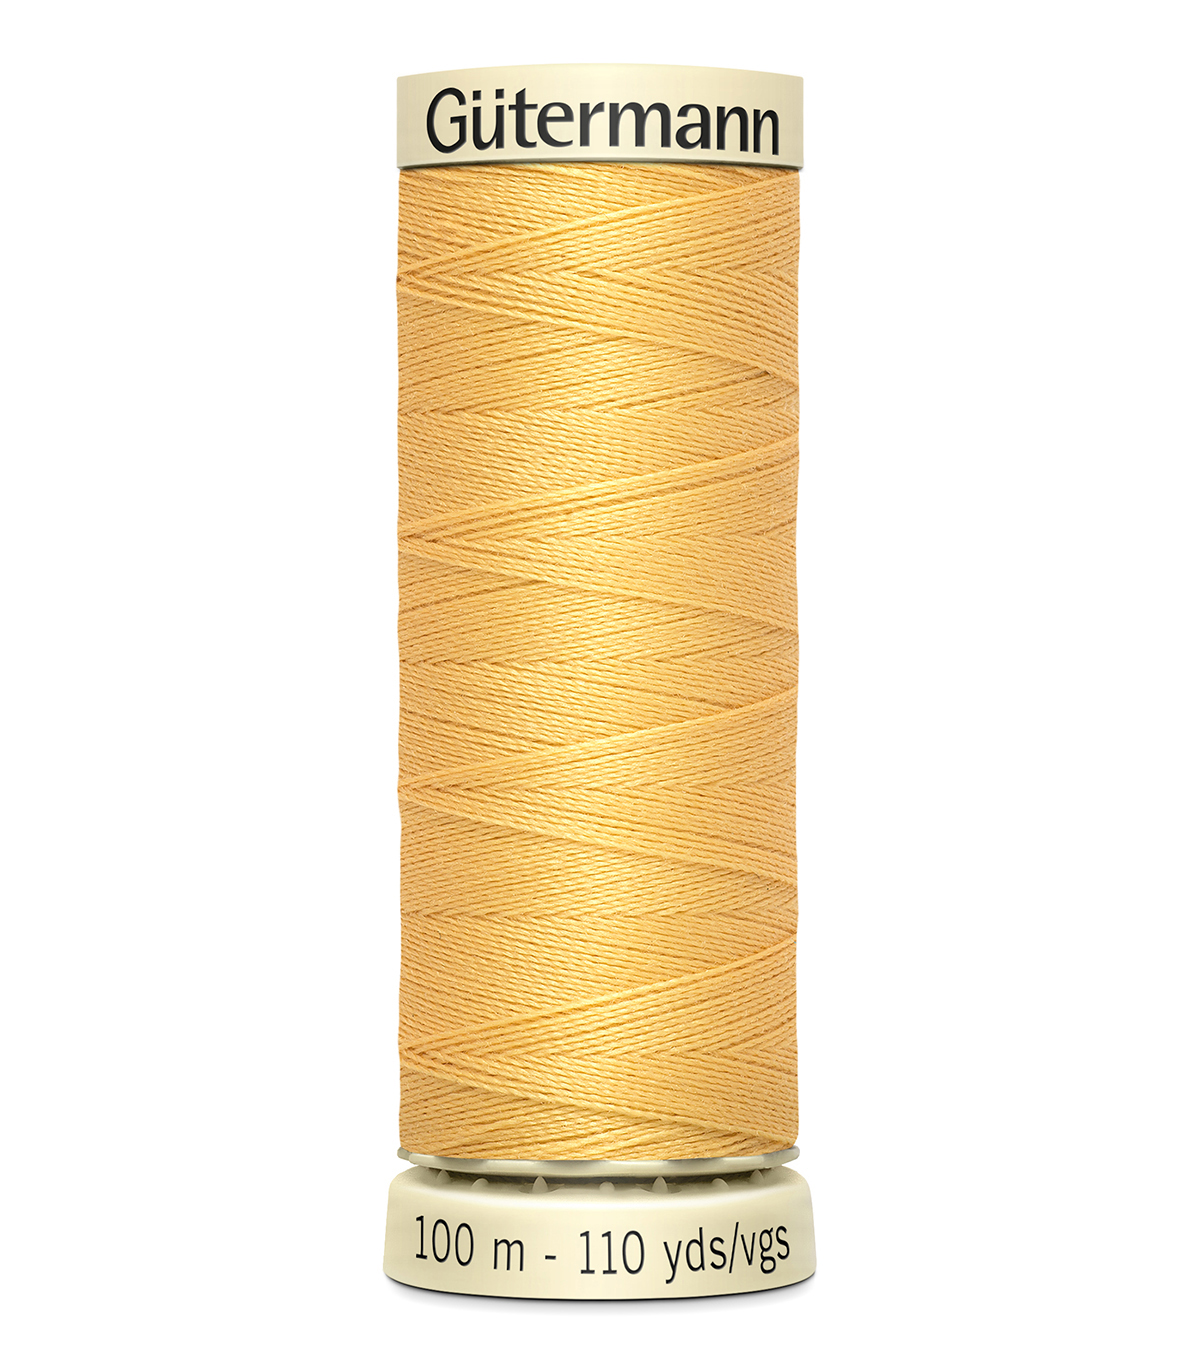 Gutermann Sew All Polyester Thread 110 Yards-Oranges & Yellows , Dusty Gold #827